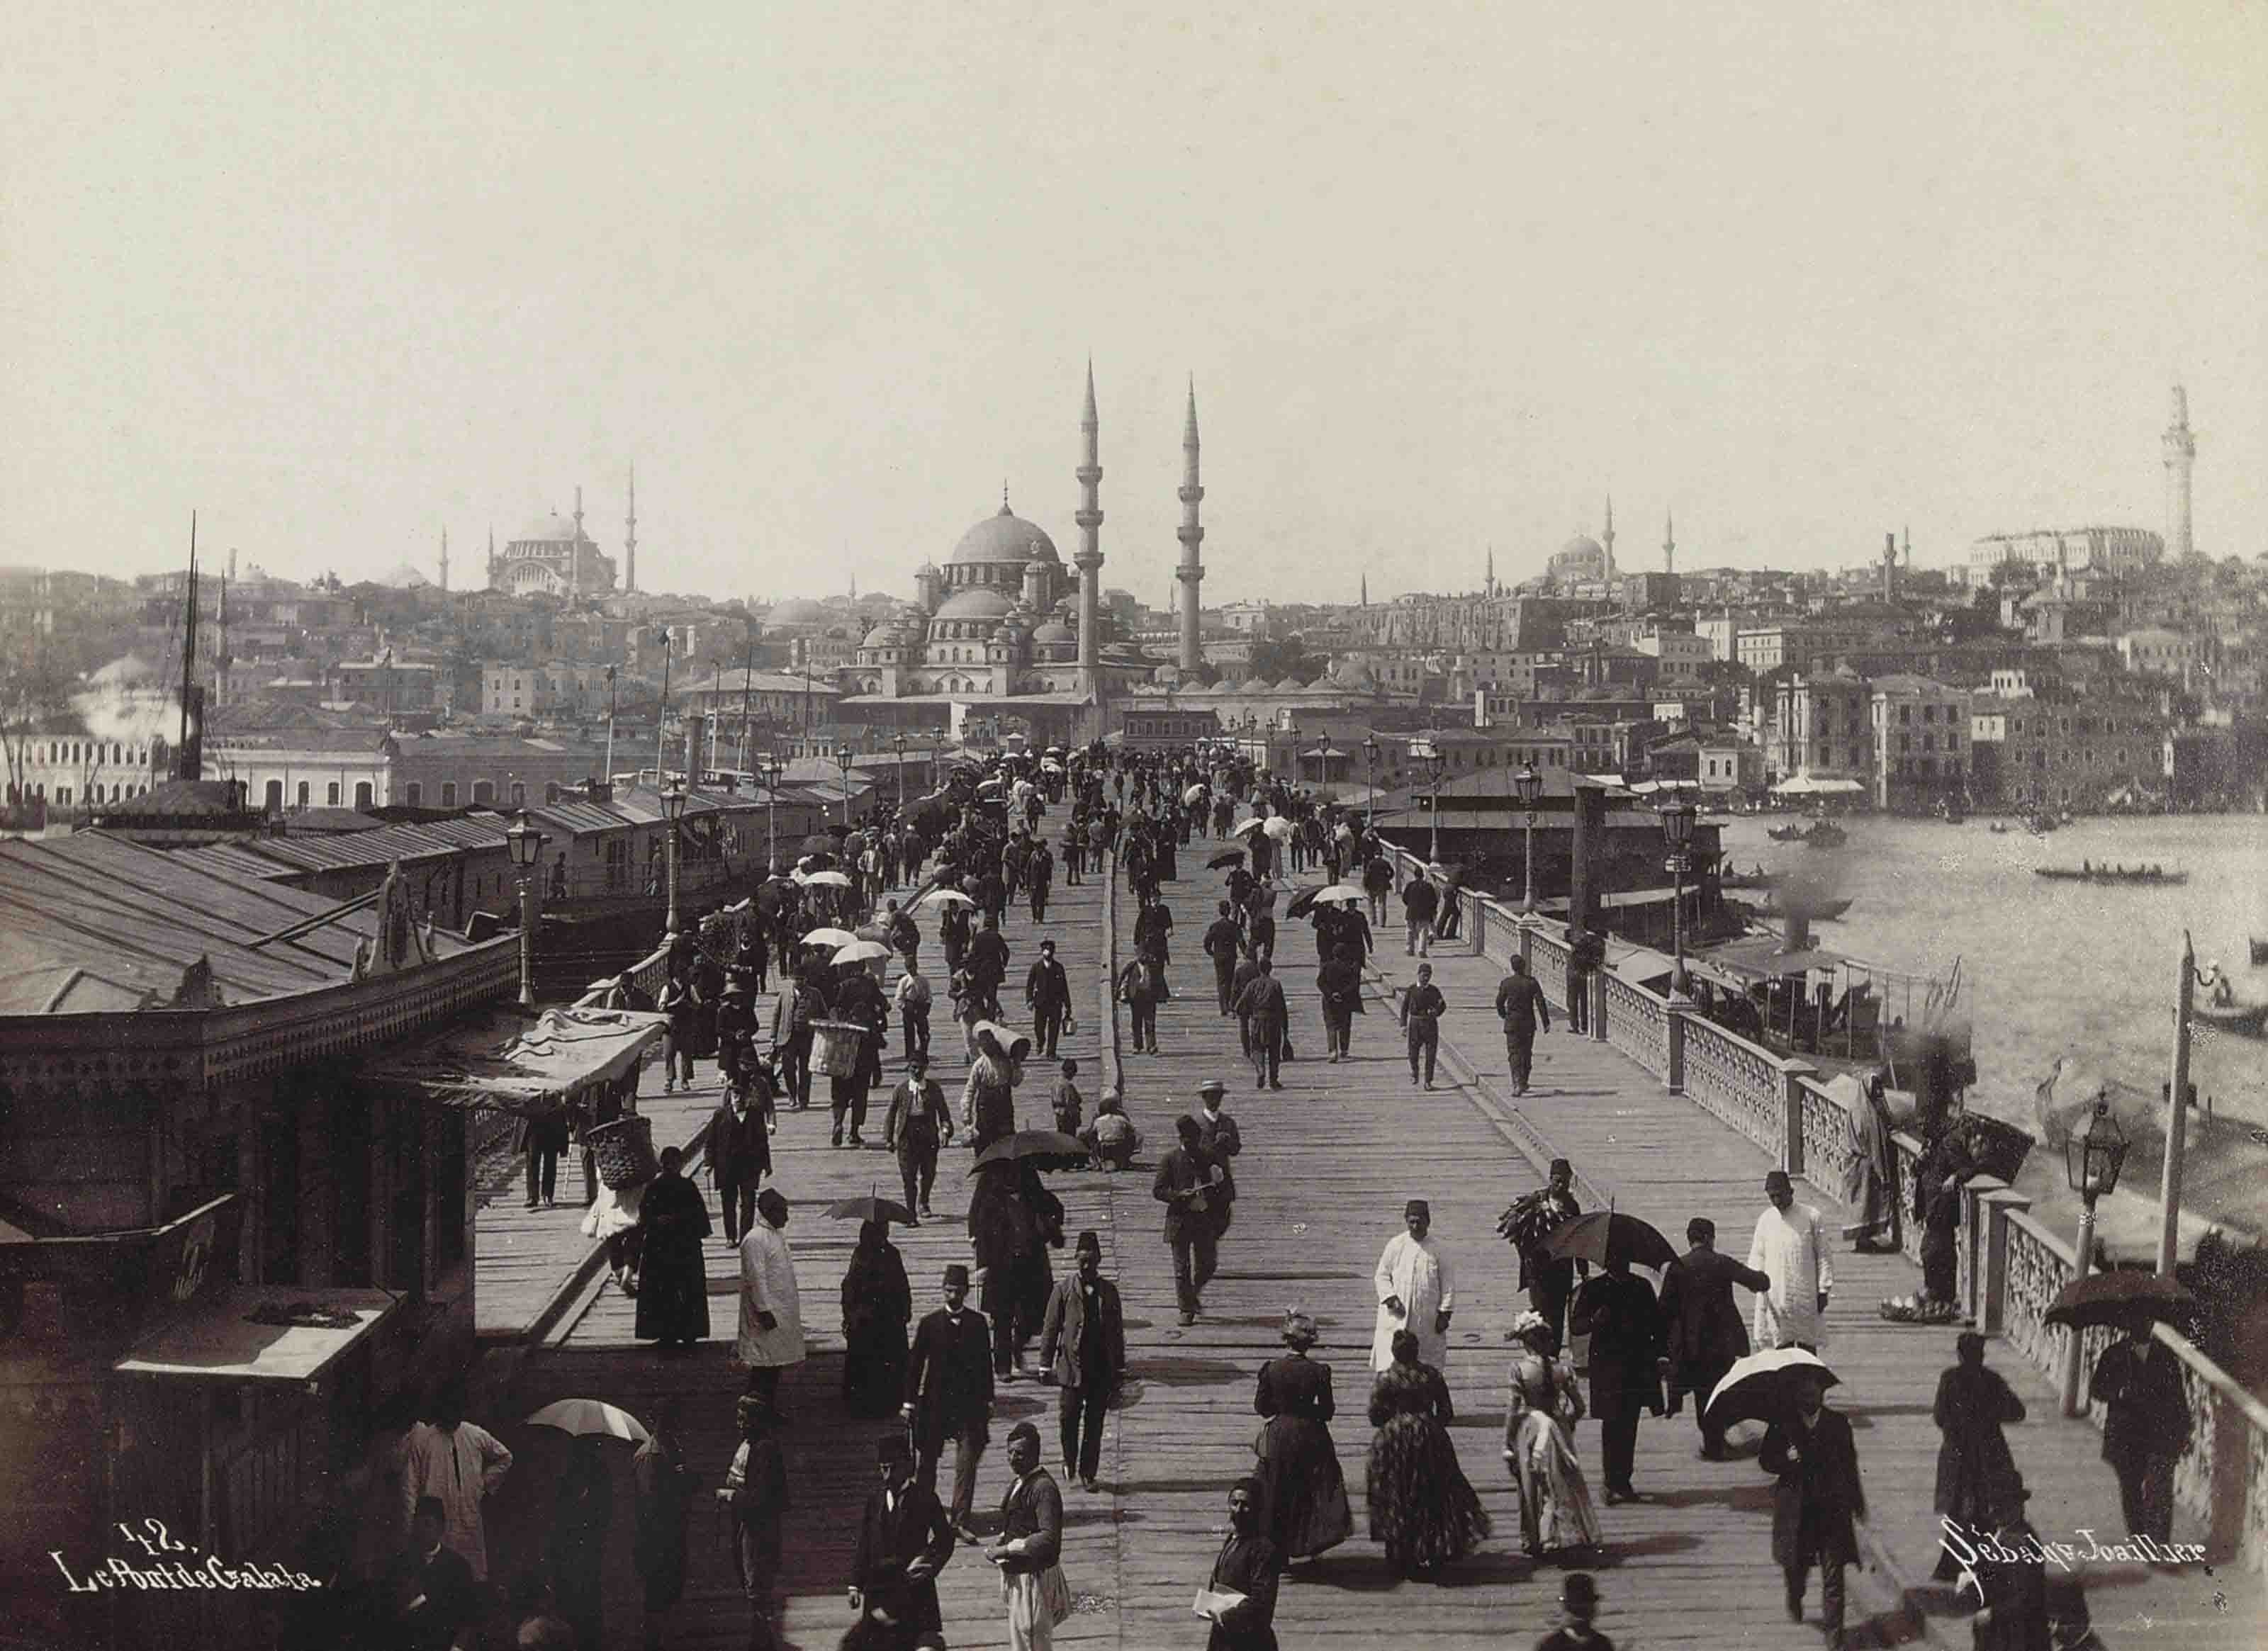 A collection of panoramic and rooftop views of the city of Constantinople including views of: Le Pont de Galata; Vue panoramique de Constantinople et de la Corne d'Or; Péra et Galata and others